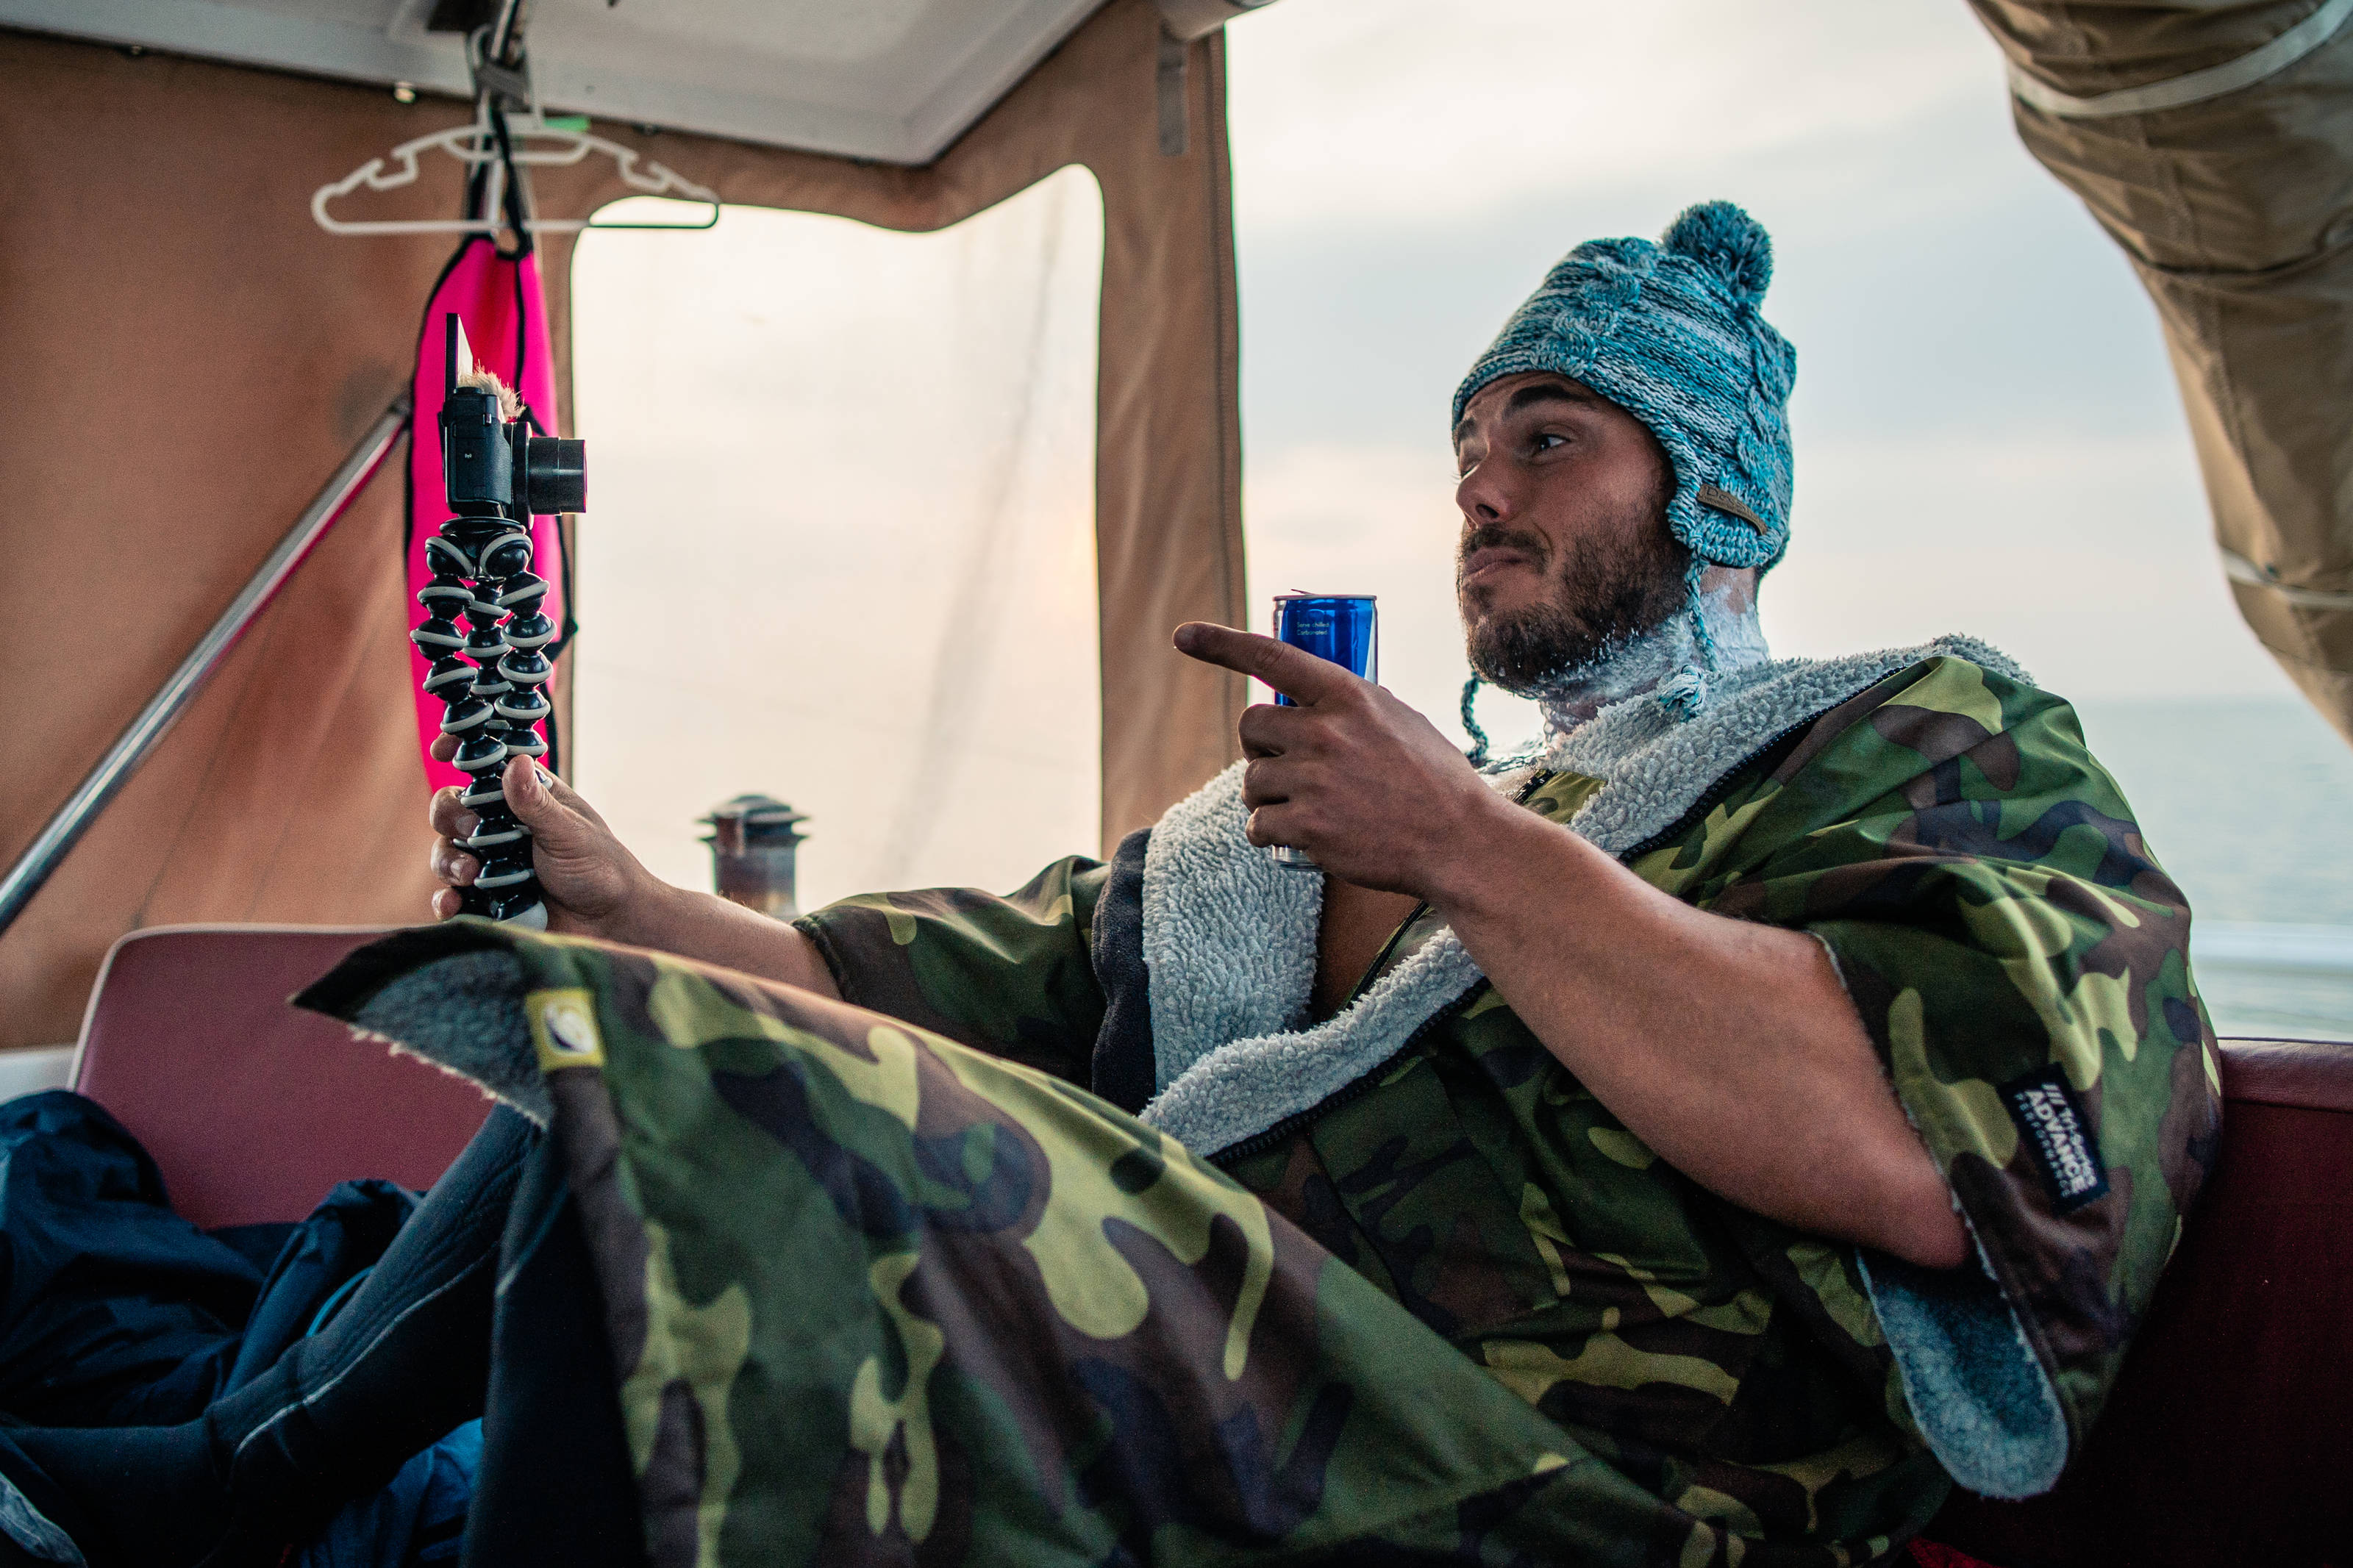 Ross Edgley in his dryrobe. Image courtesy of Red Bull Content Pool